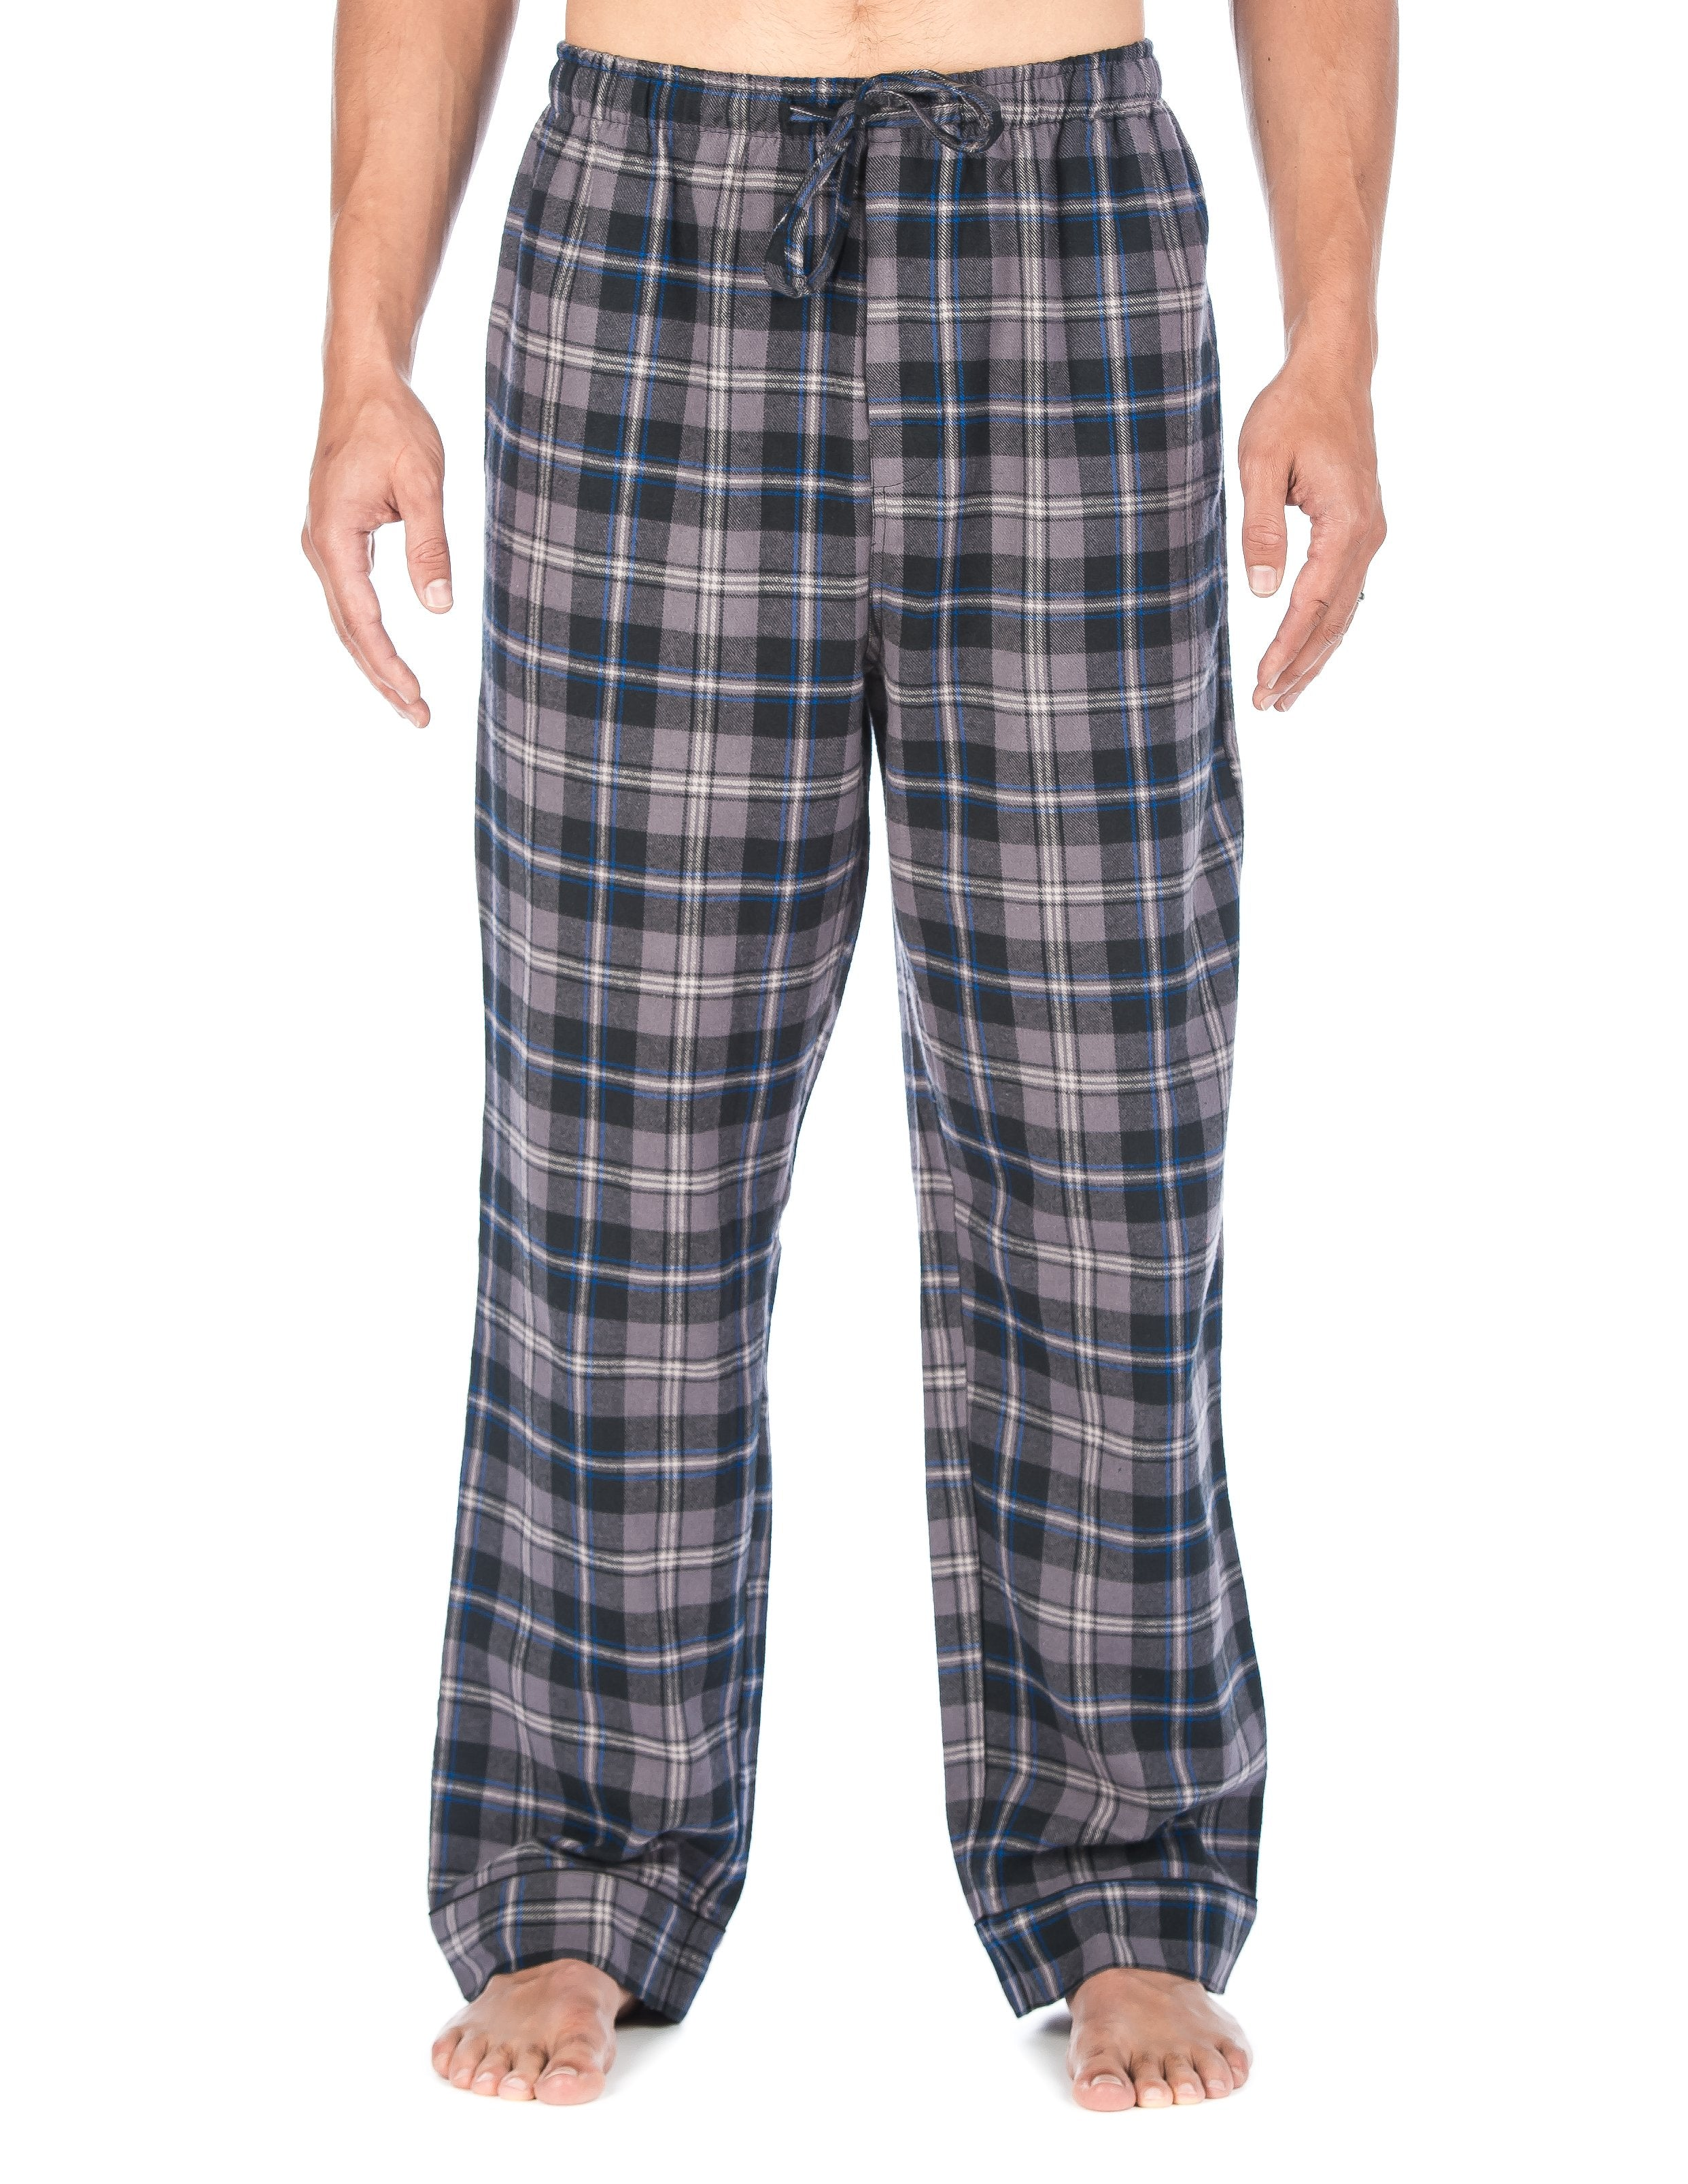 Mens Gingham 100% Cotton Flannel Lounge Pants - Black-Brown Tone